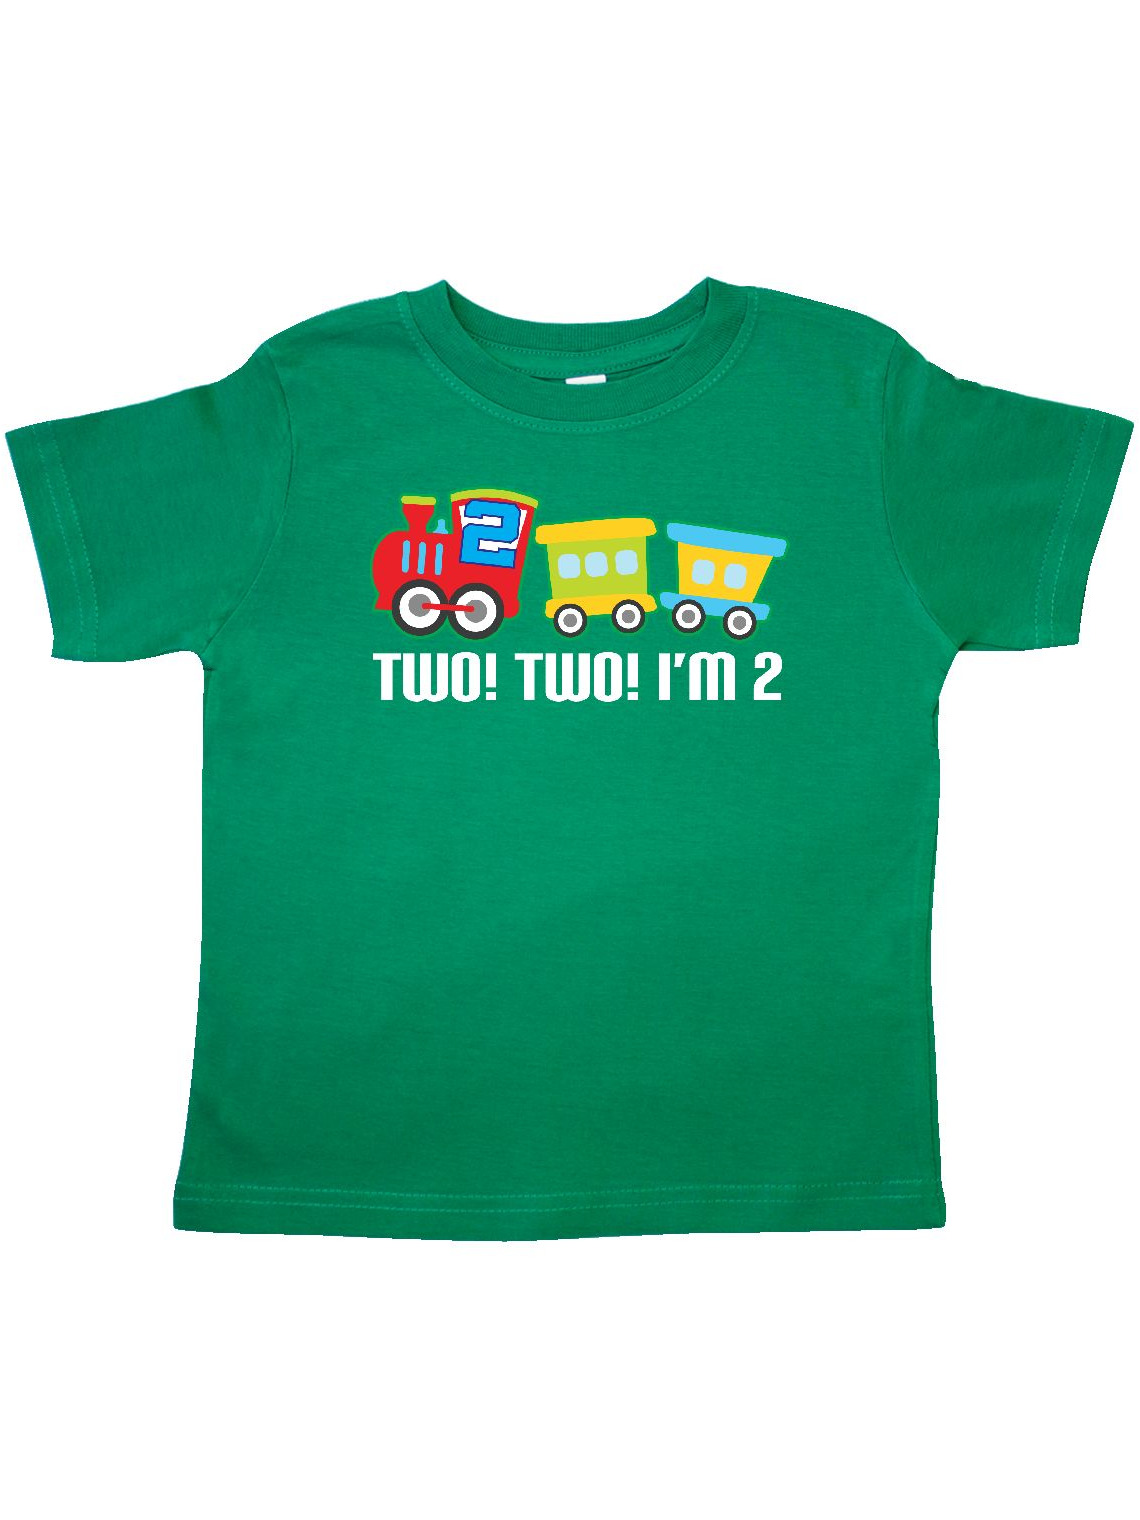 2nd Birthday Two Two Train Outfit Toddler T-Shirt